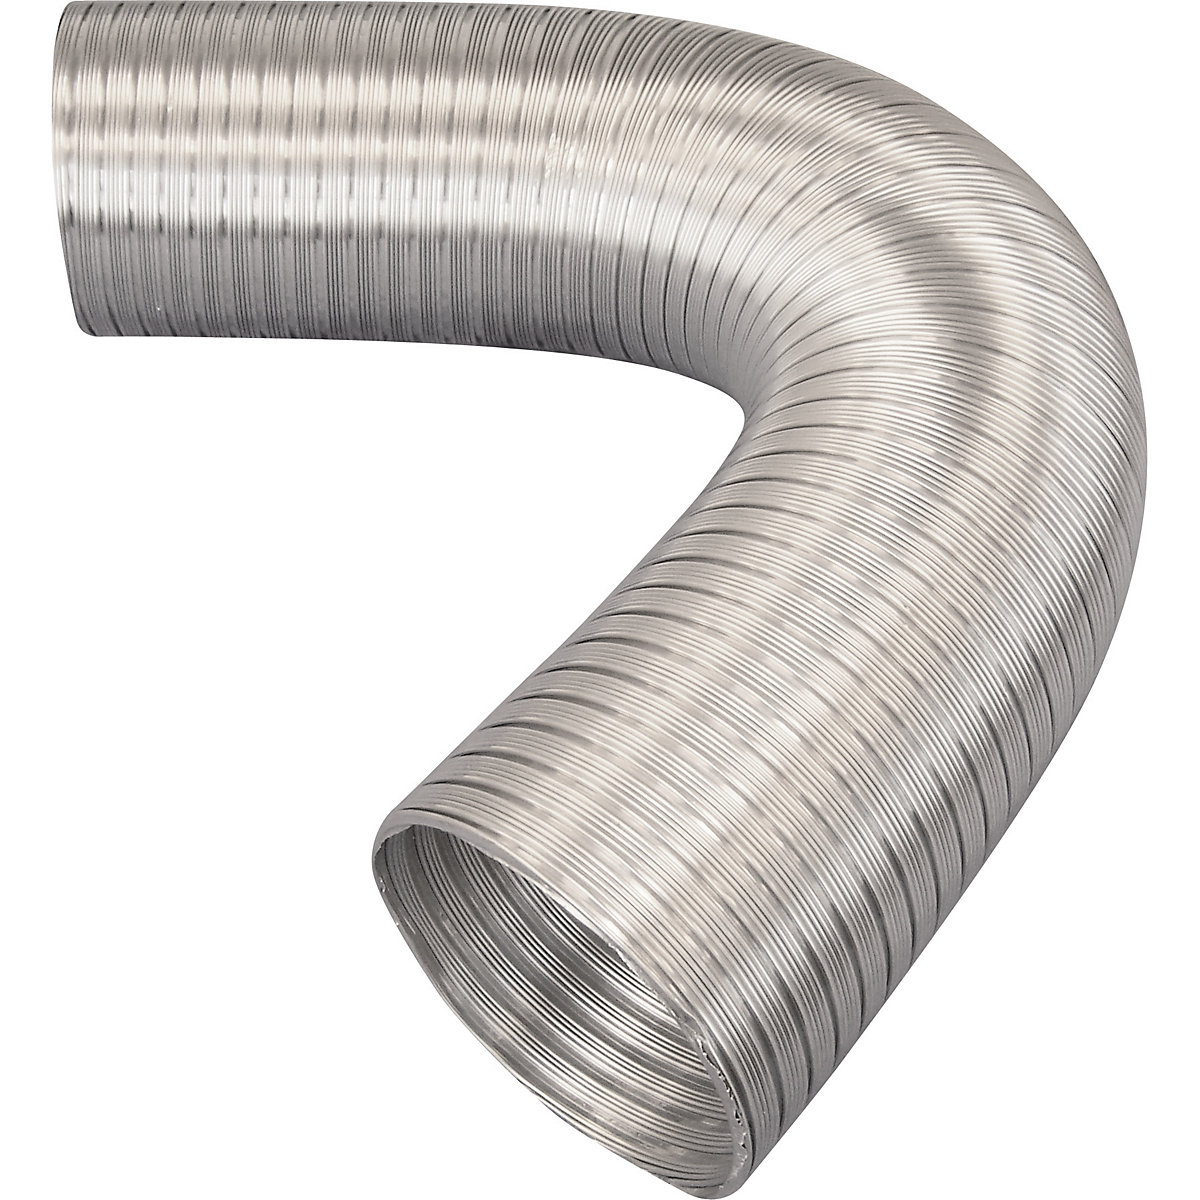 Iflo Aluminium Flexible Ducting 100mm X 1500mm Travis Perkins Wiring Duct For Electric Wire Protection Tube Conduit